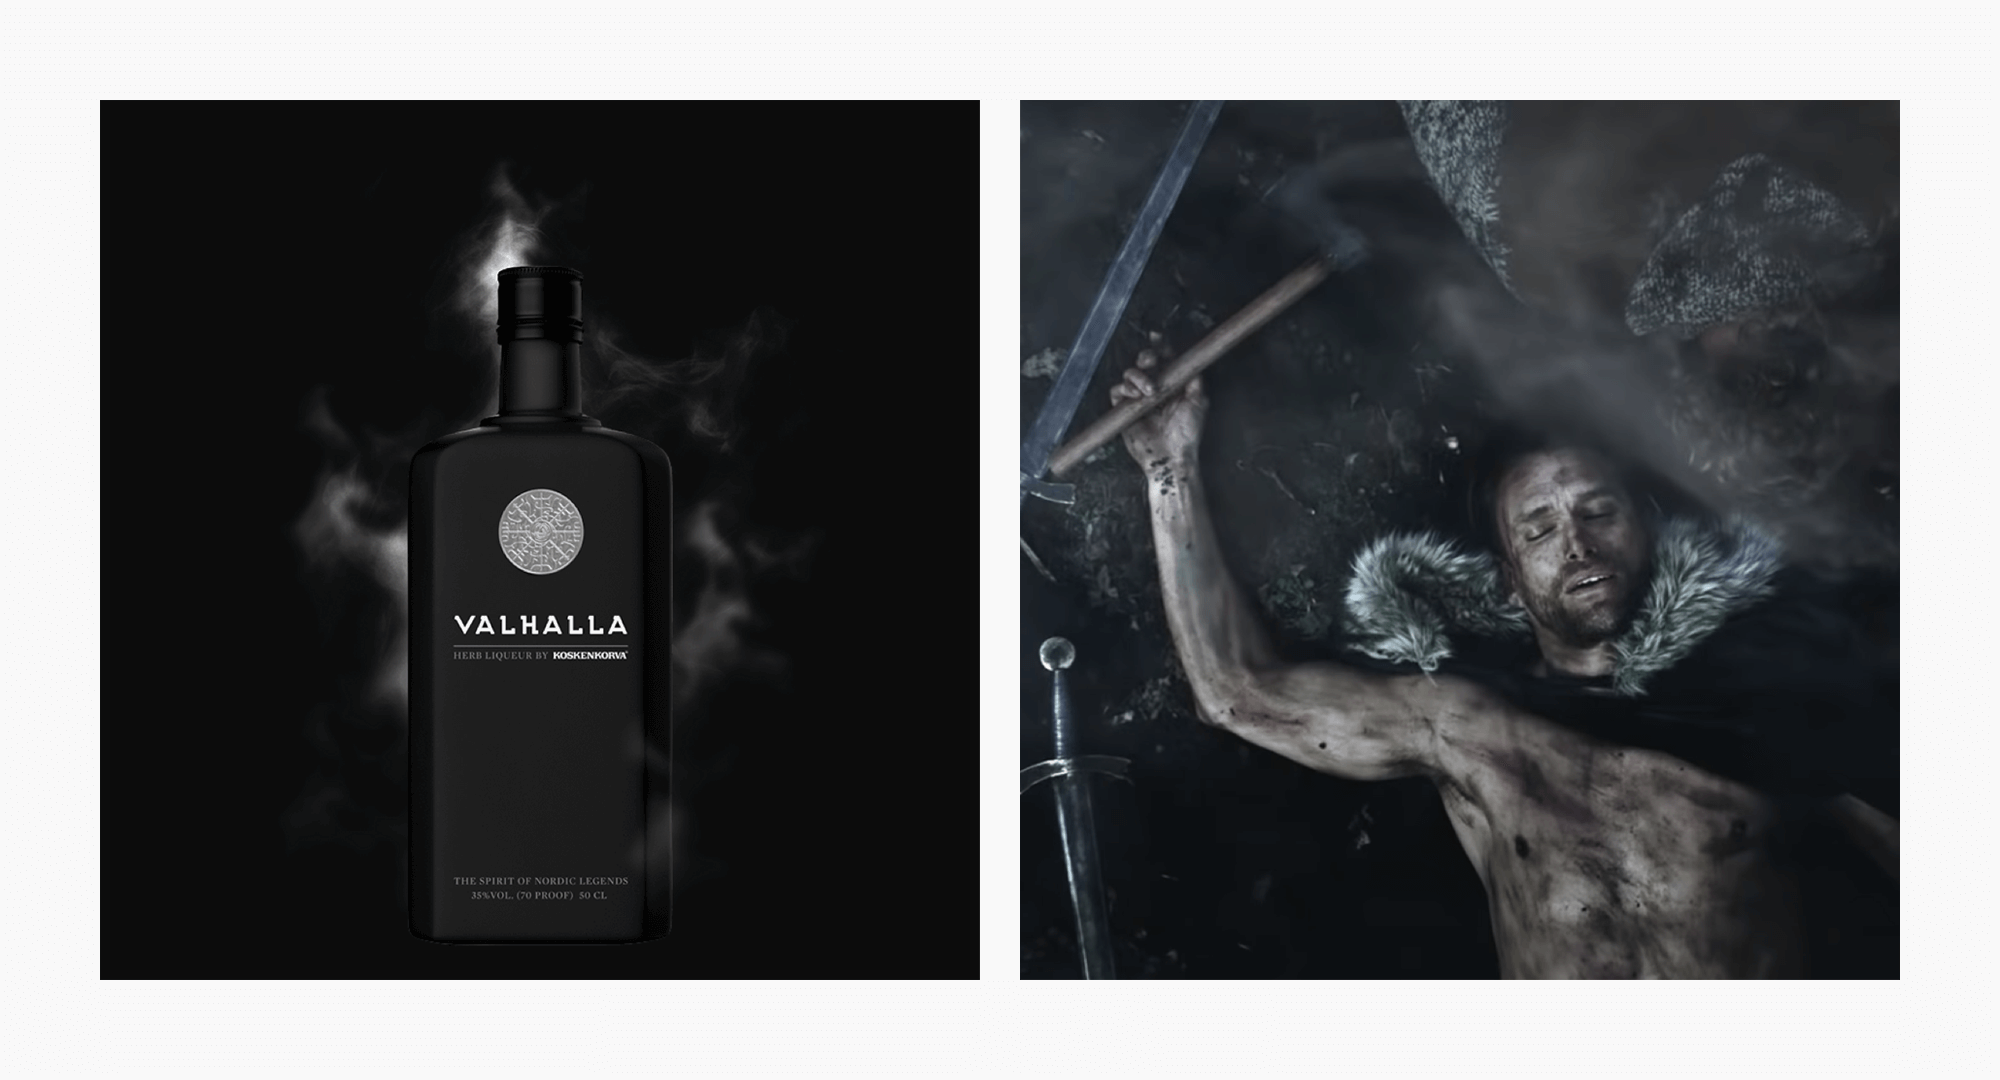 A bottle of Nordic herb liqueur, Valhalla. A warrior is lying down on the ground.